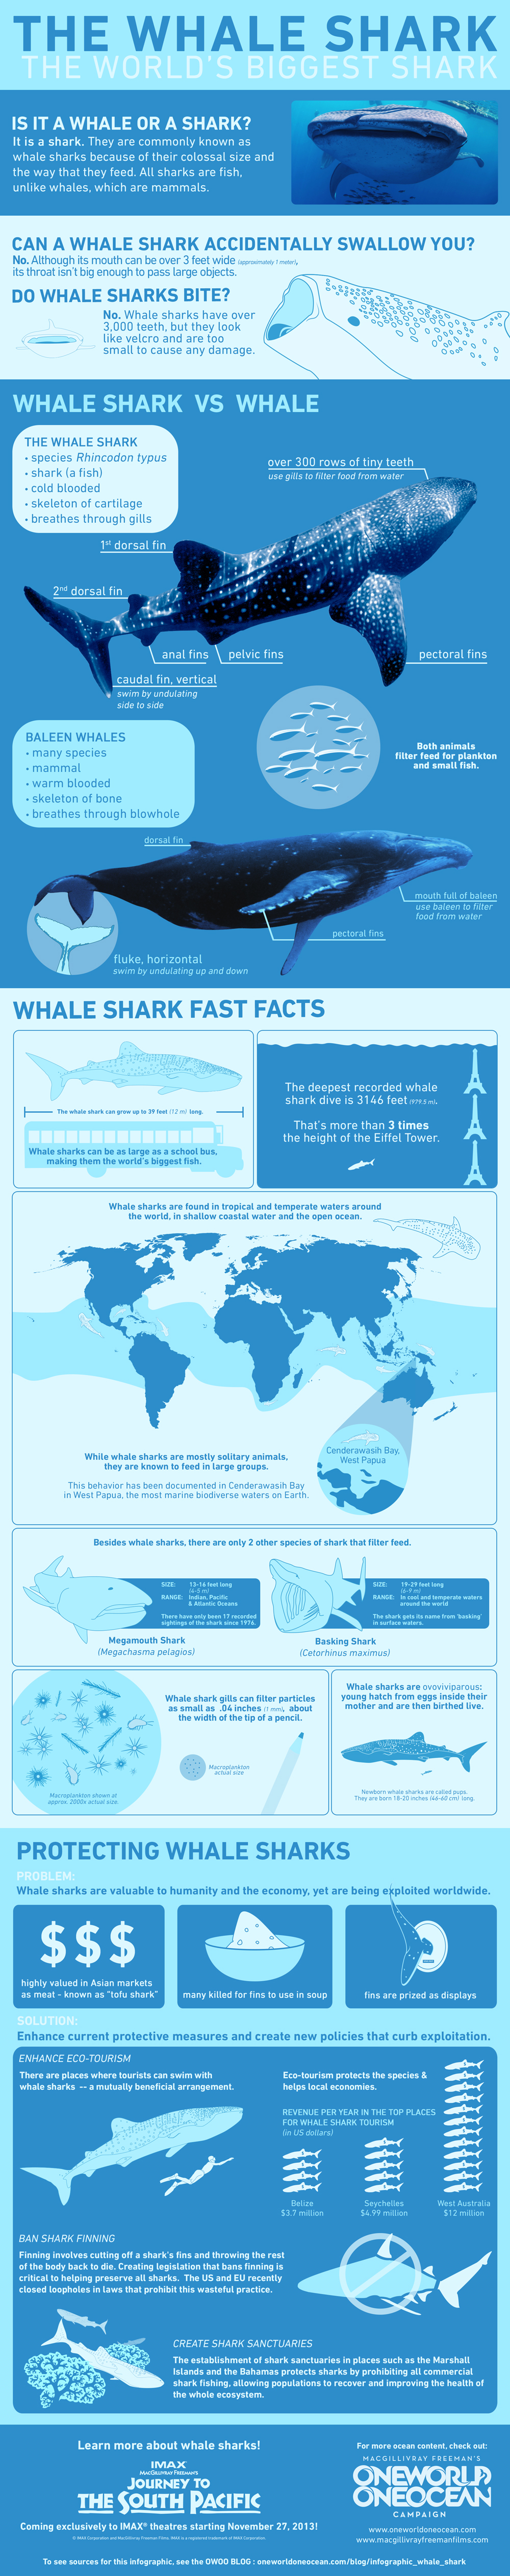 Whale Shark Infographic 2